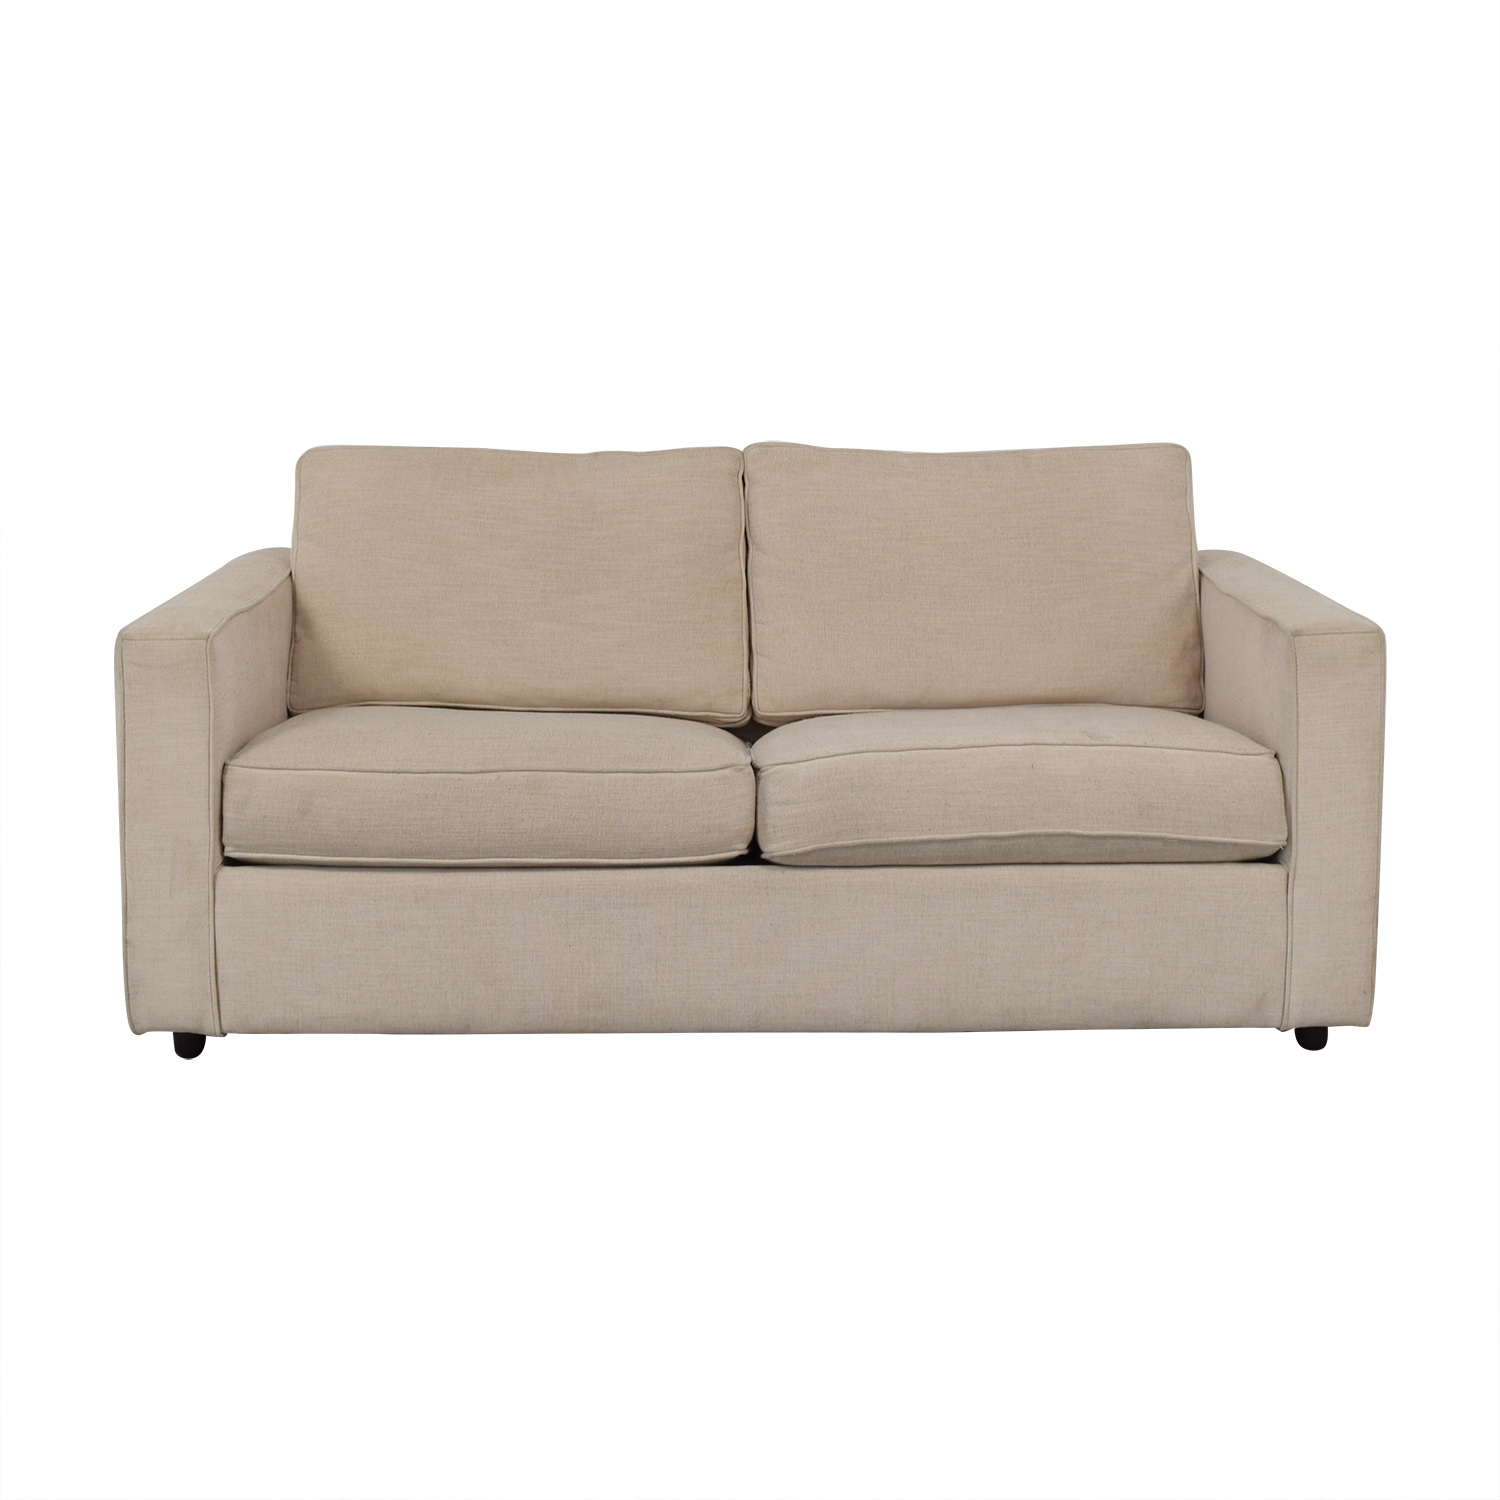 Arhaus Arhaus Filmore Air Sleeper Sofa beige